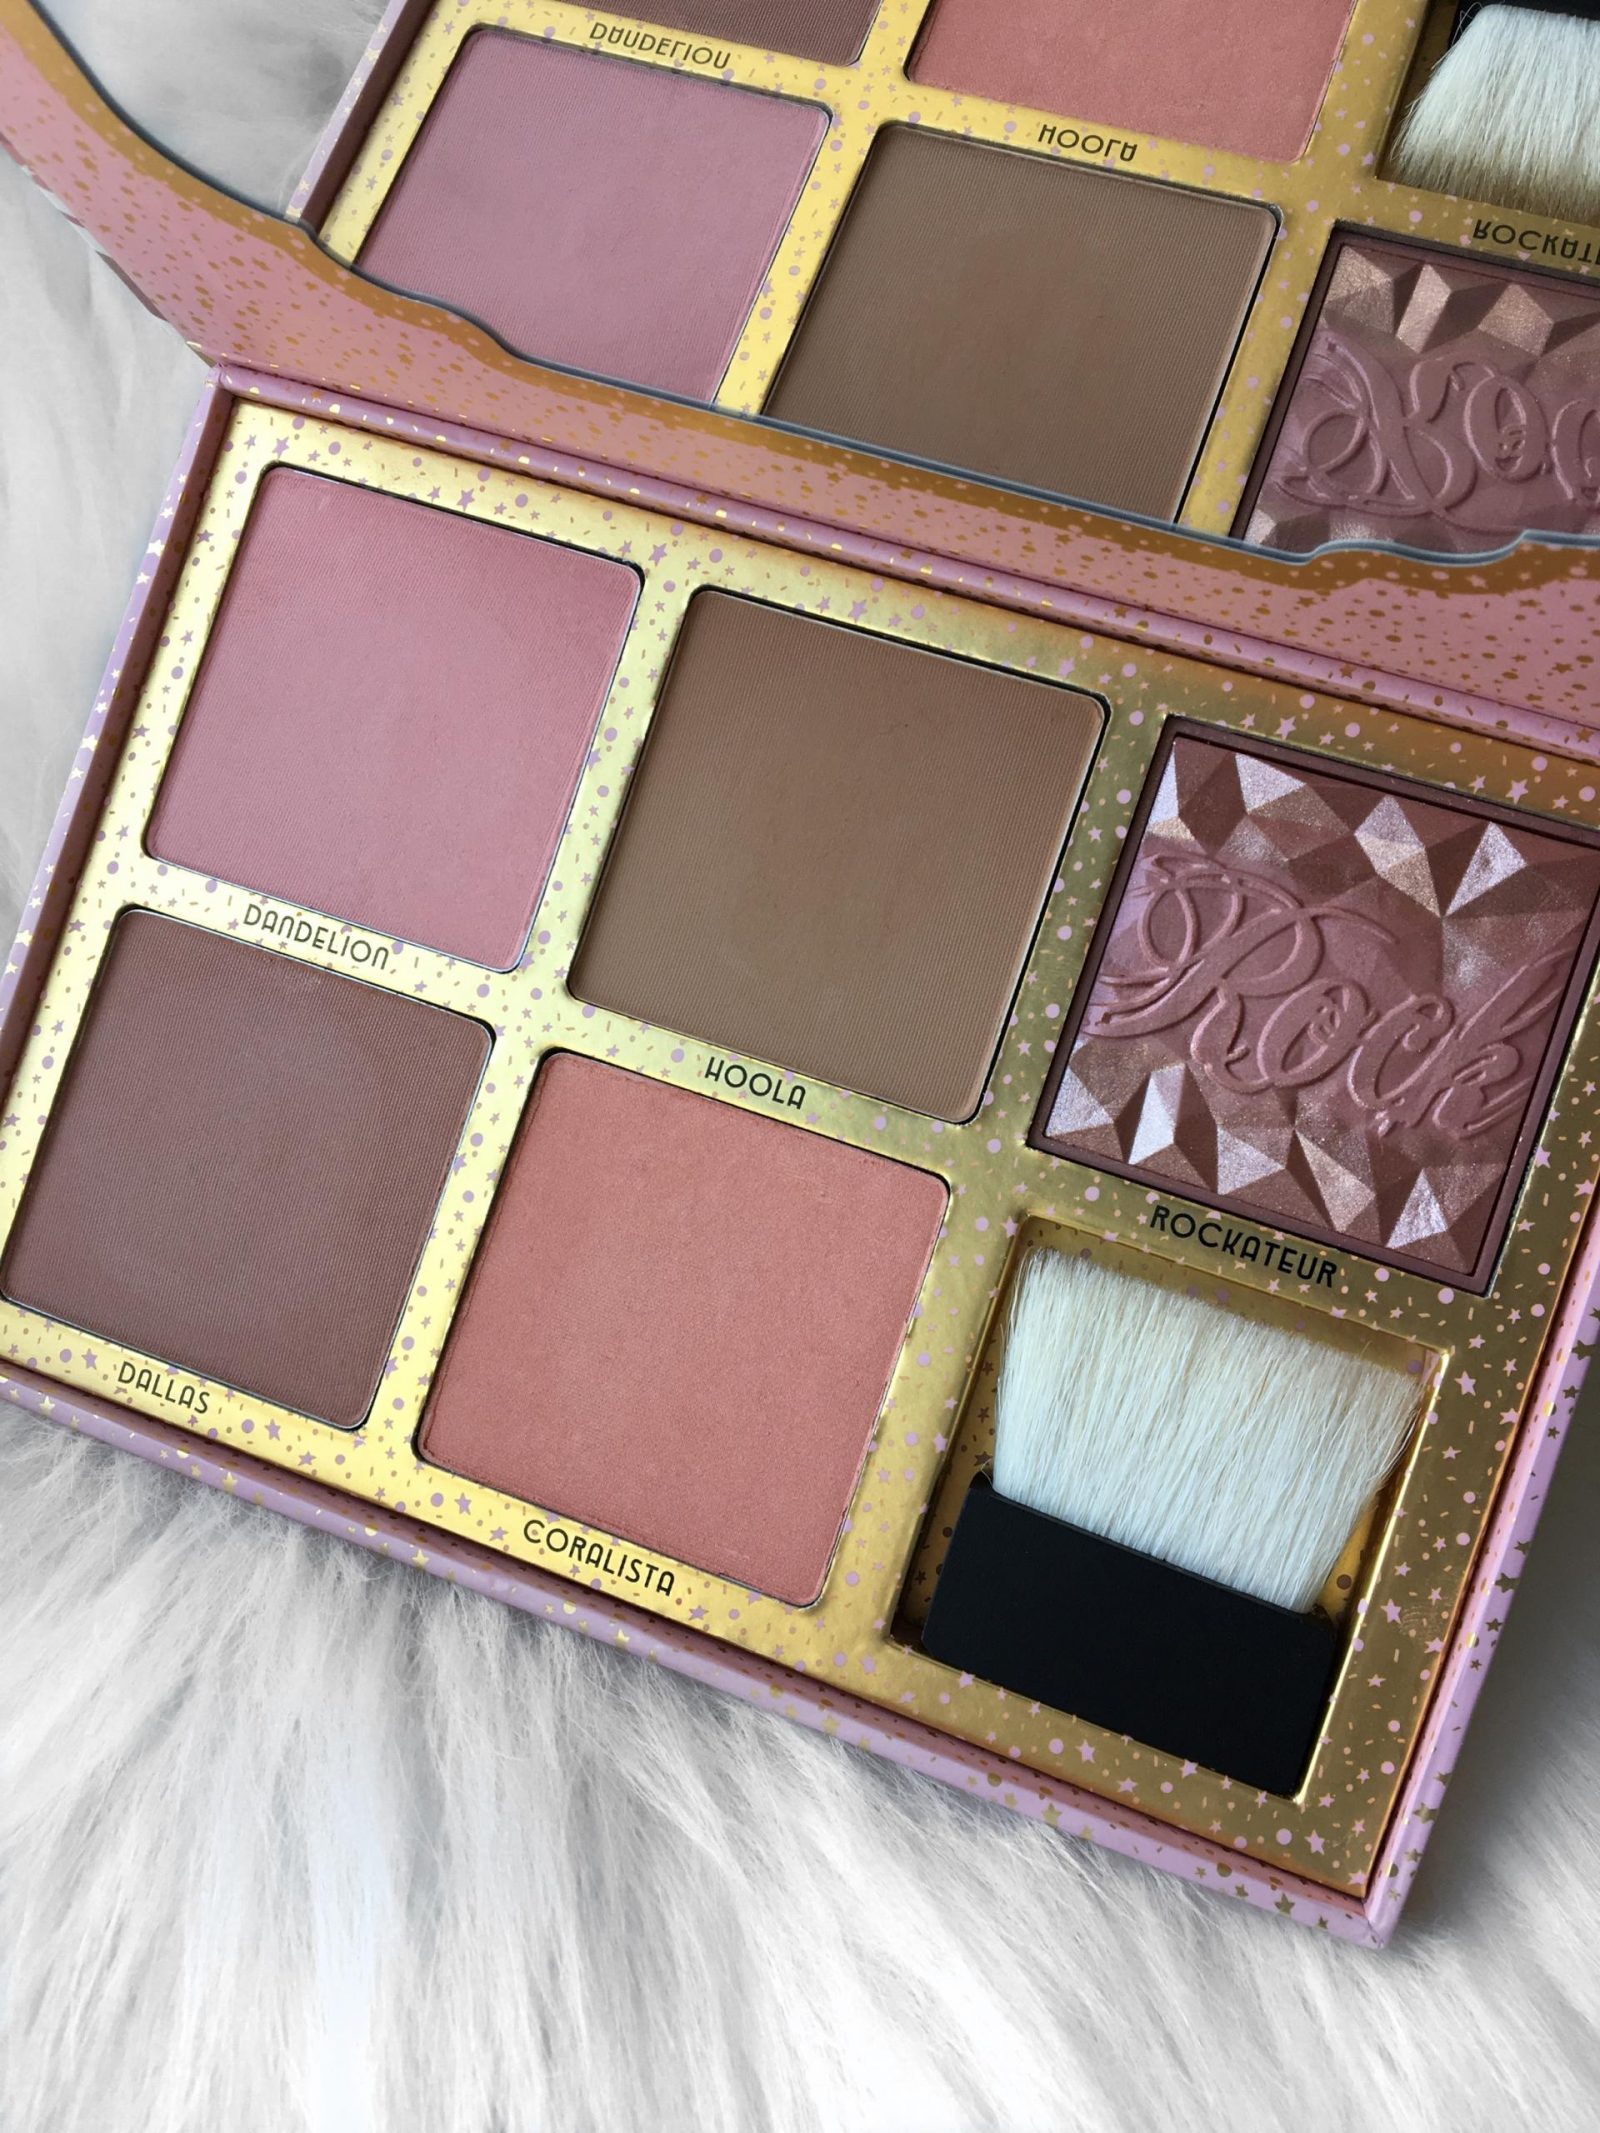 Benefit Cosmetics Cheekathon Palette